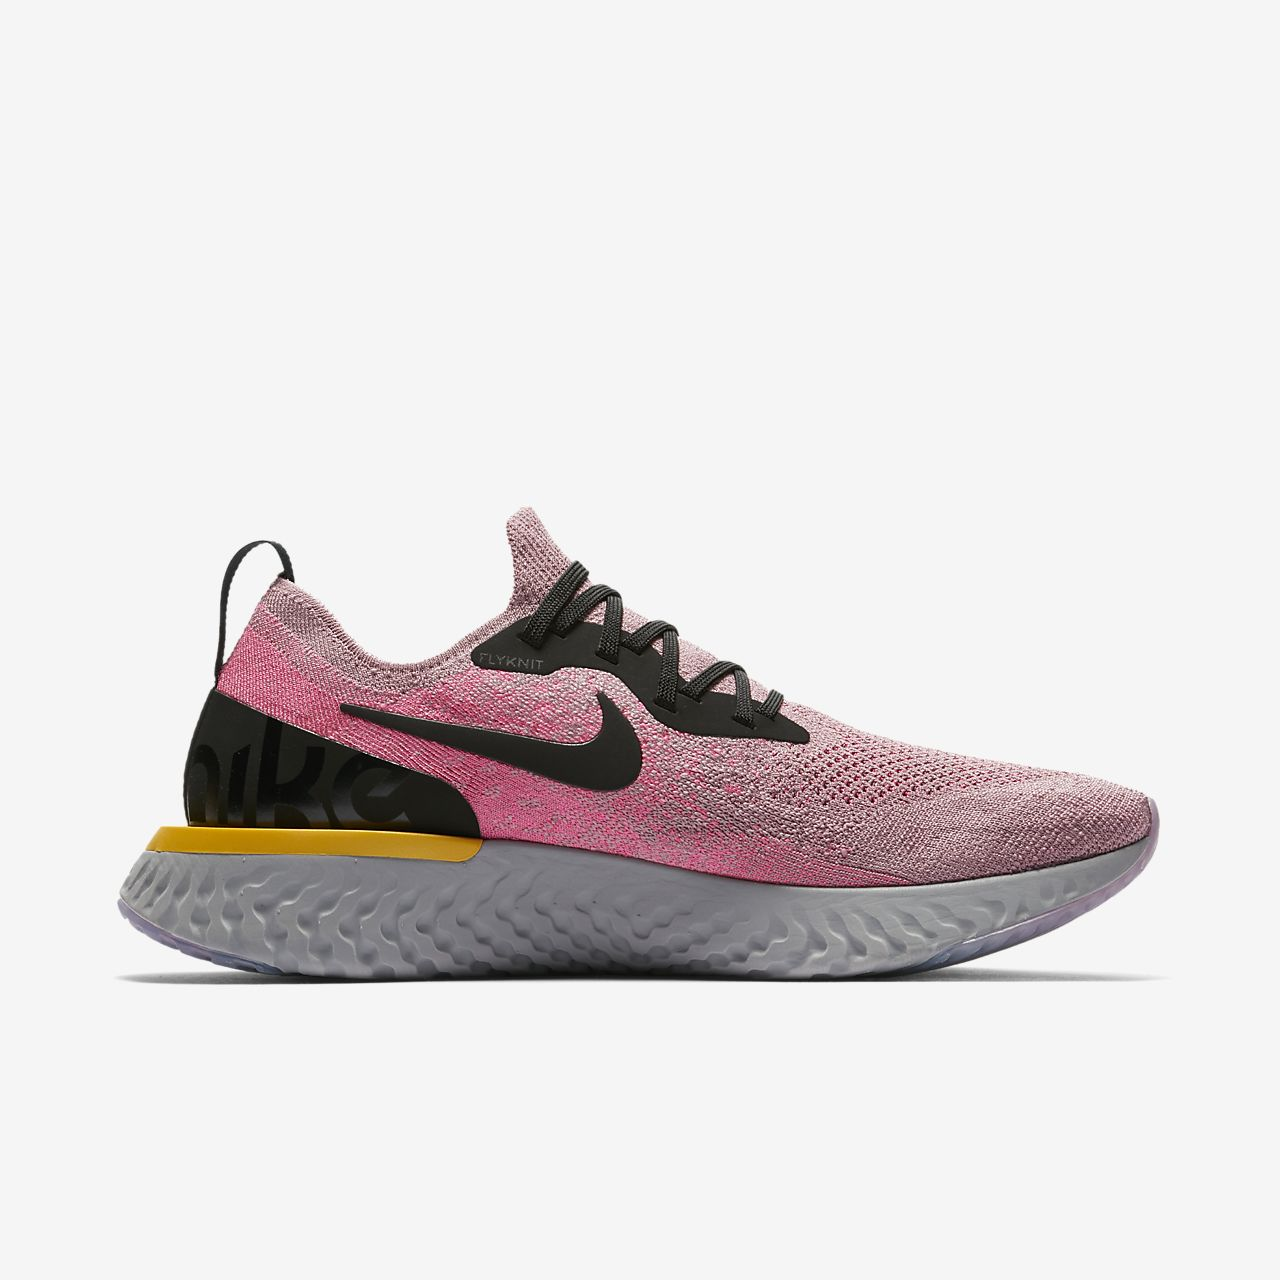 13e40099771d Nike Epic React Flyknit 1 Men s Running Shoe. Nike.com